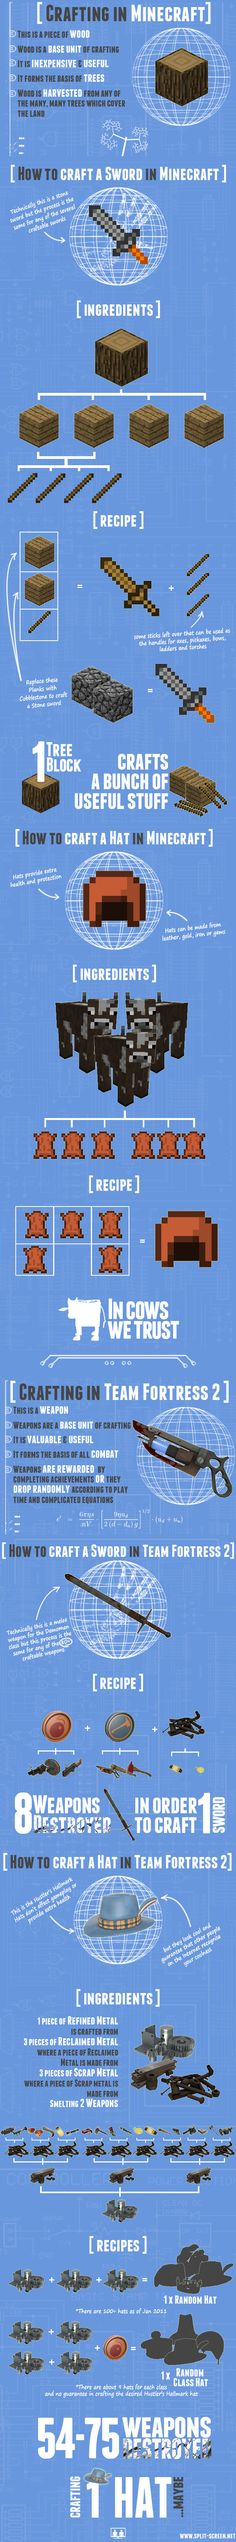 Minecraft vs. Team Fortress 2 | Visit our new infographic gallery at visualoop.com/